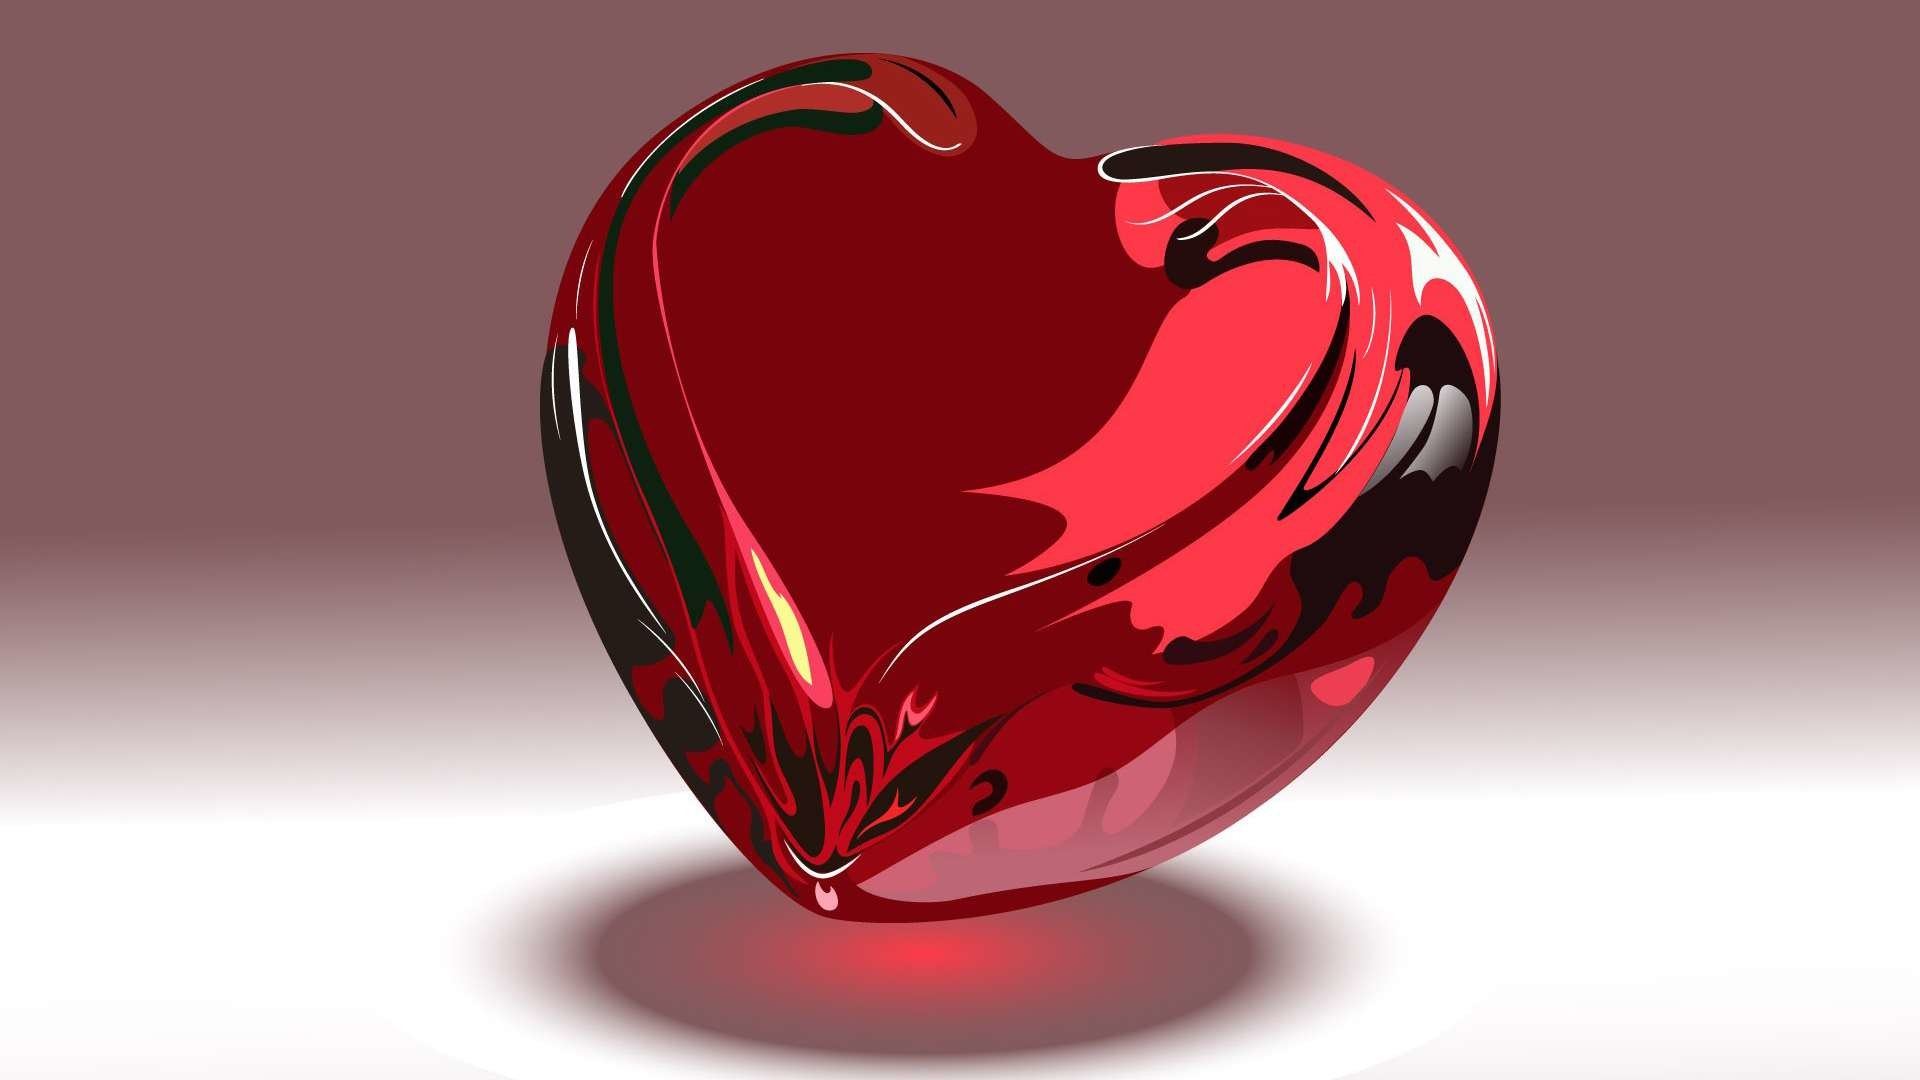 Heart 3D Wallpaper